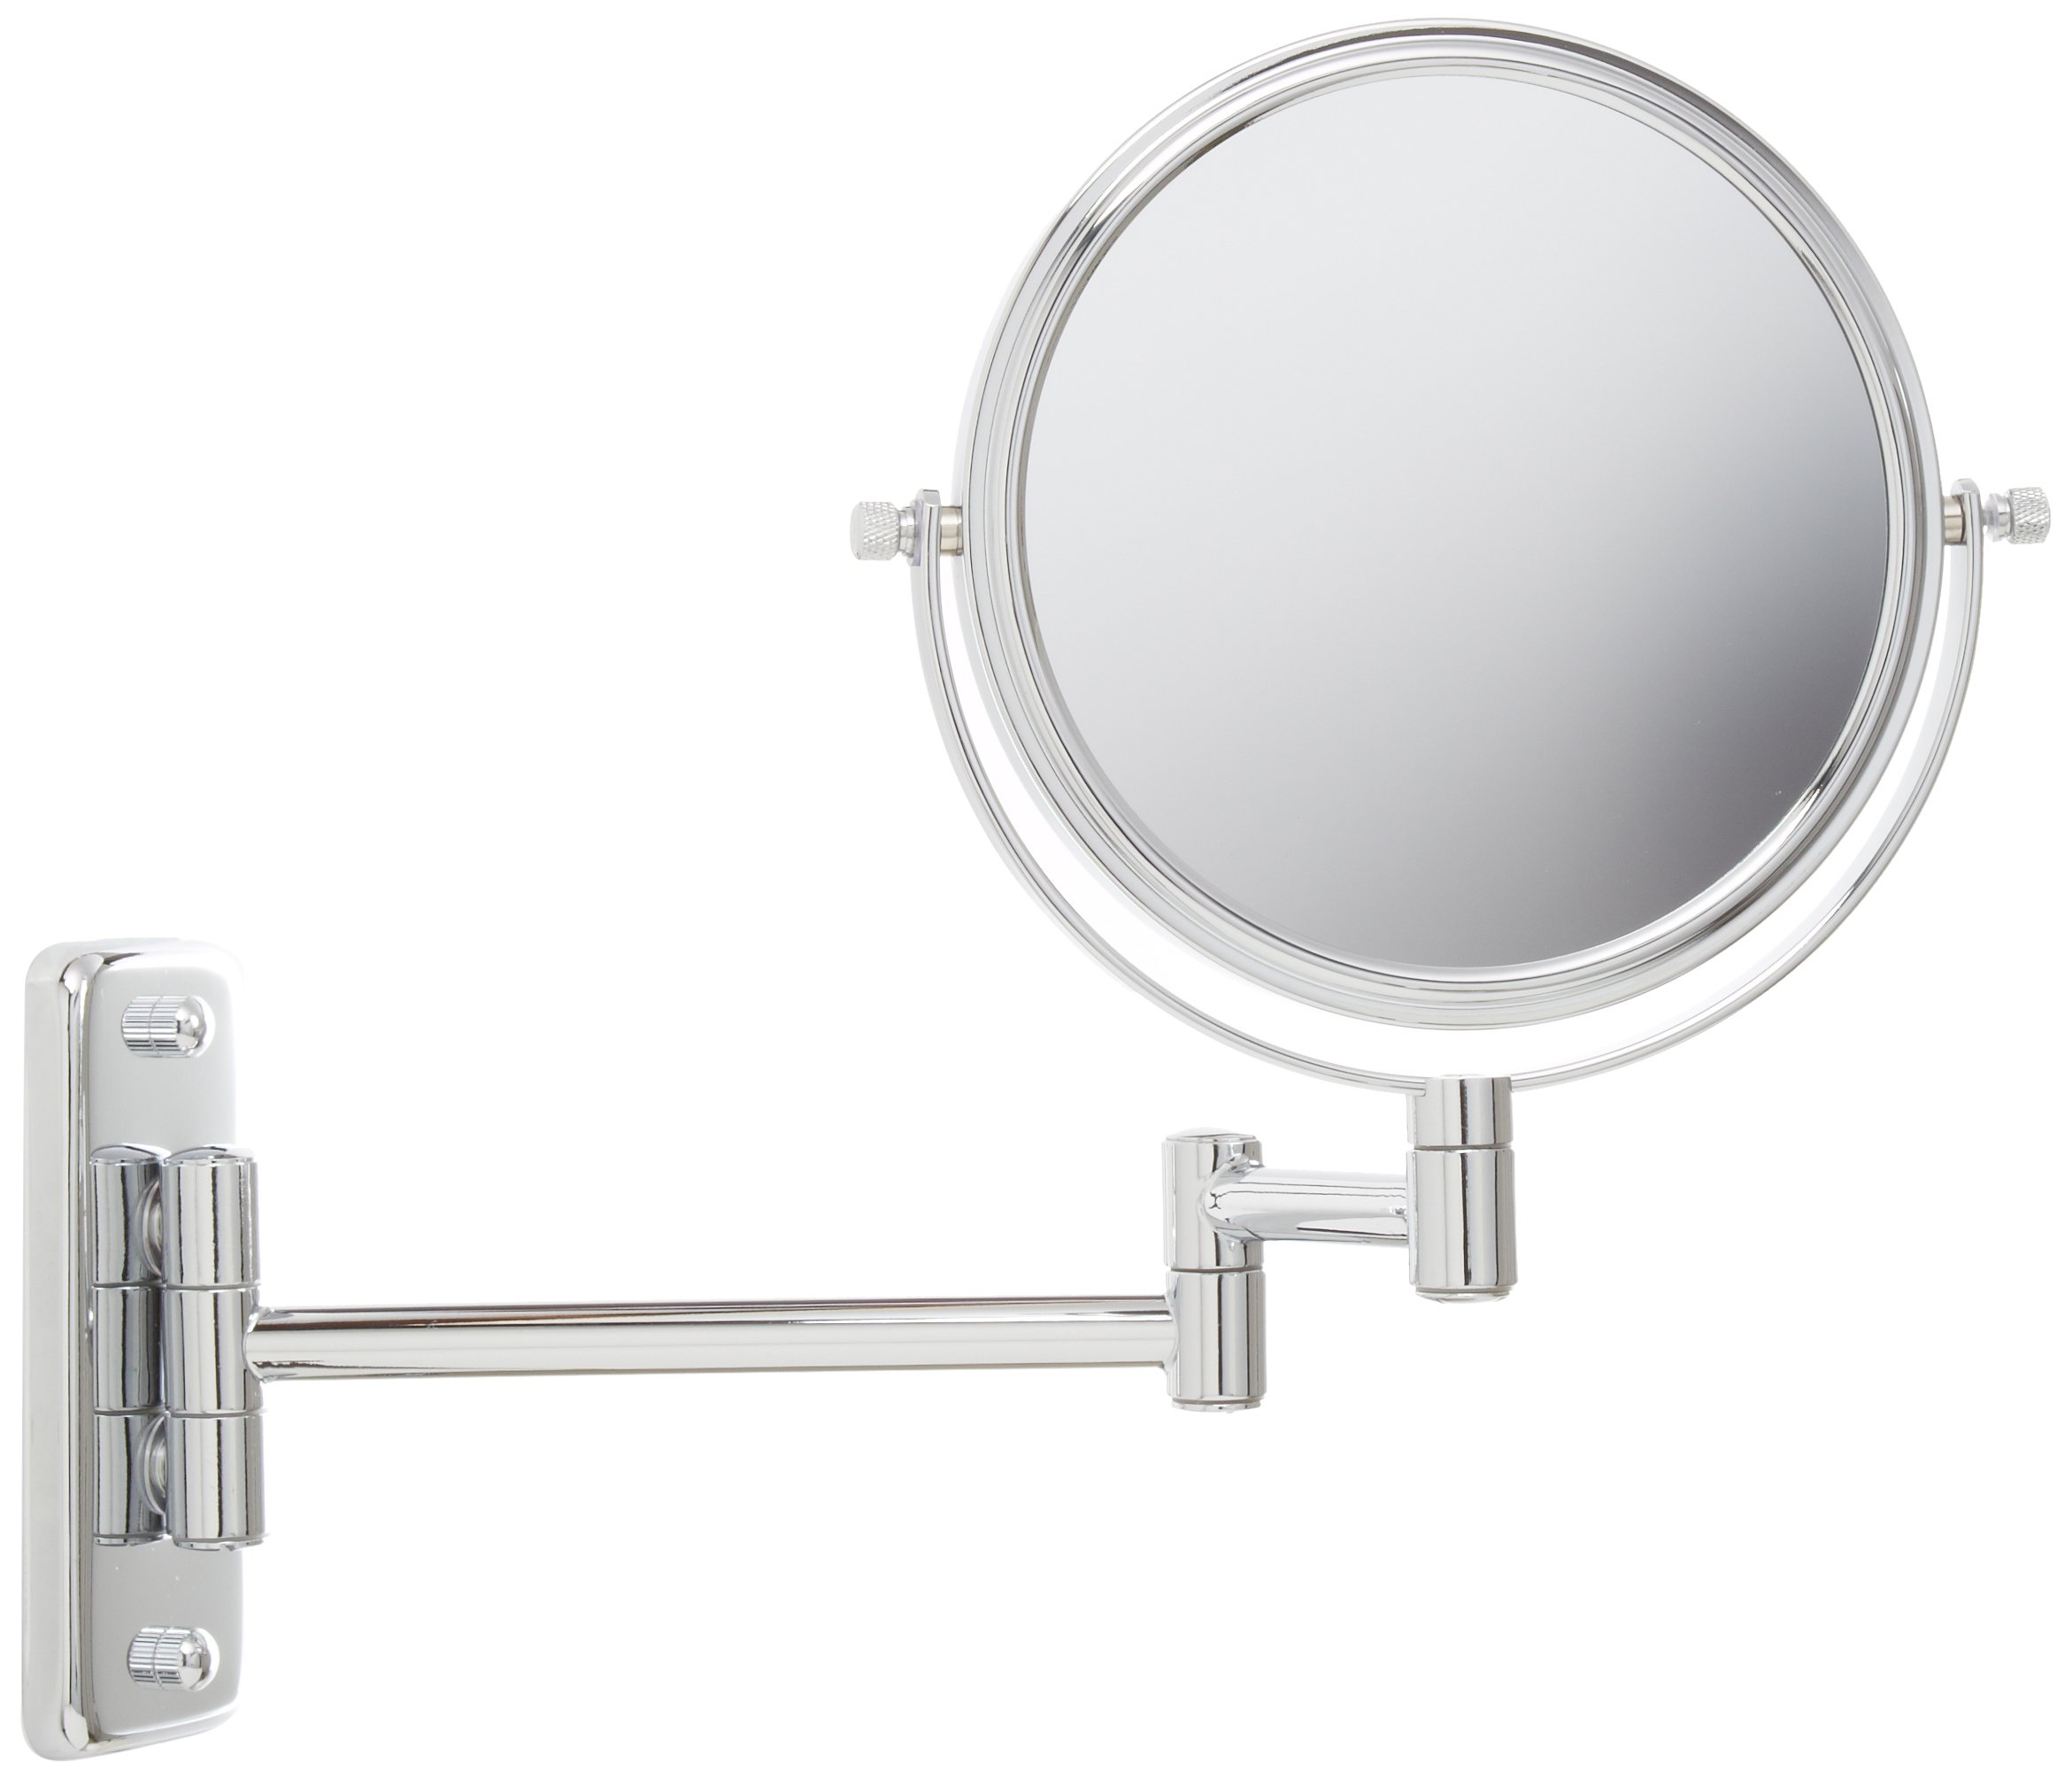 Jerdon JP7508C 6-Inch Wall Mount Makeup Mirror with 5x Magnification, Chrome Finish